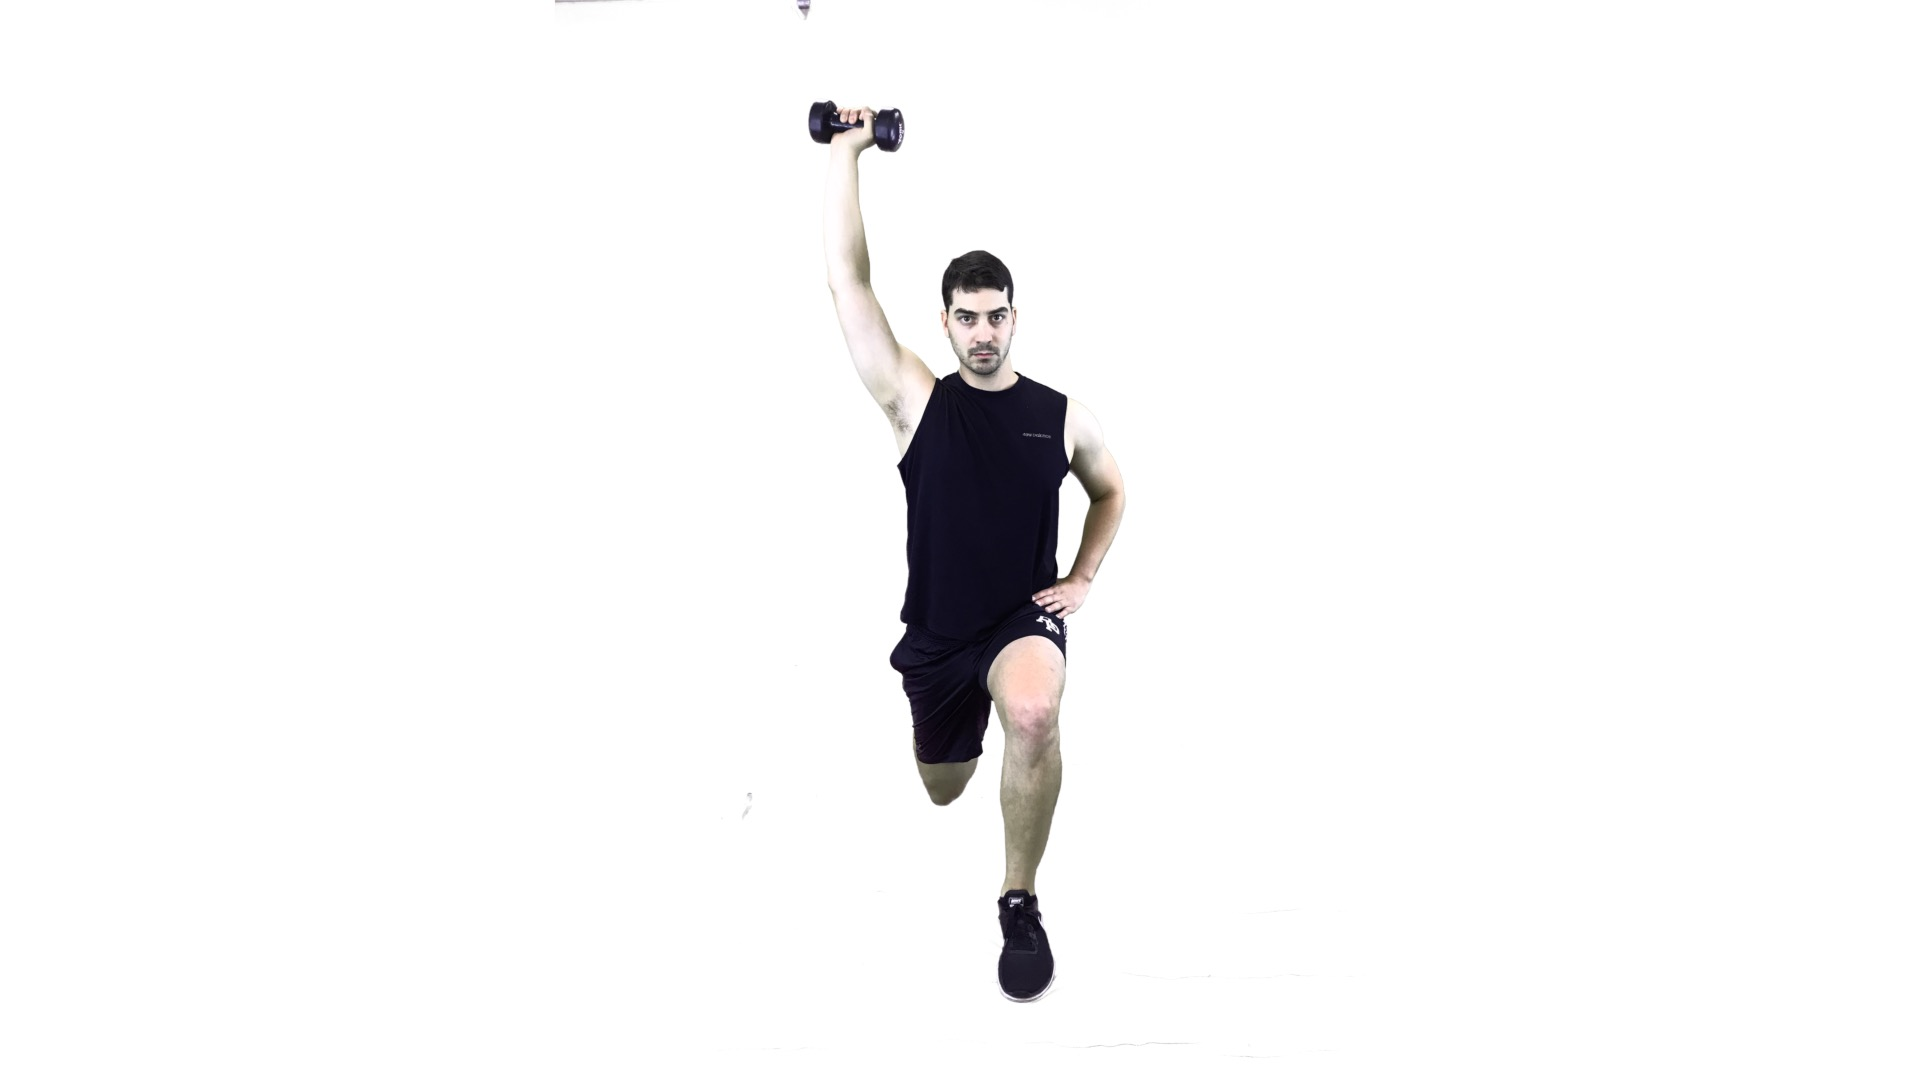 lunge with single arm overhead press.jpg